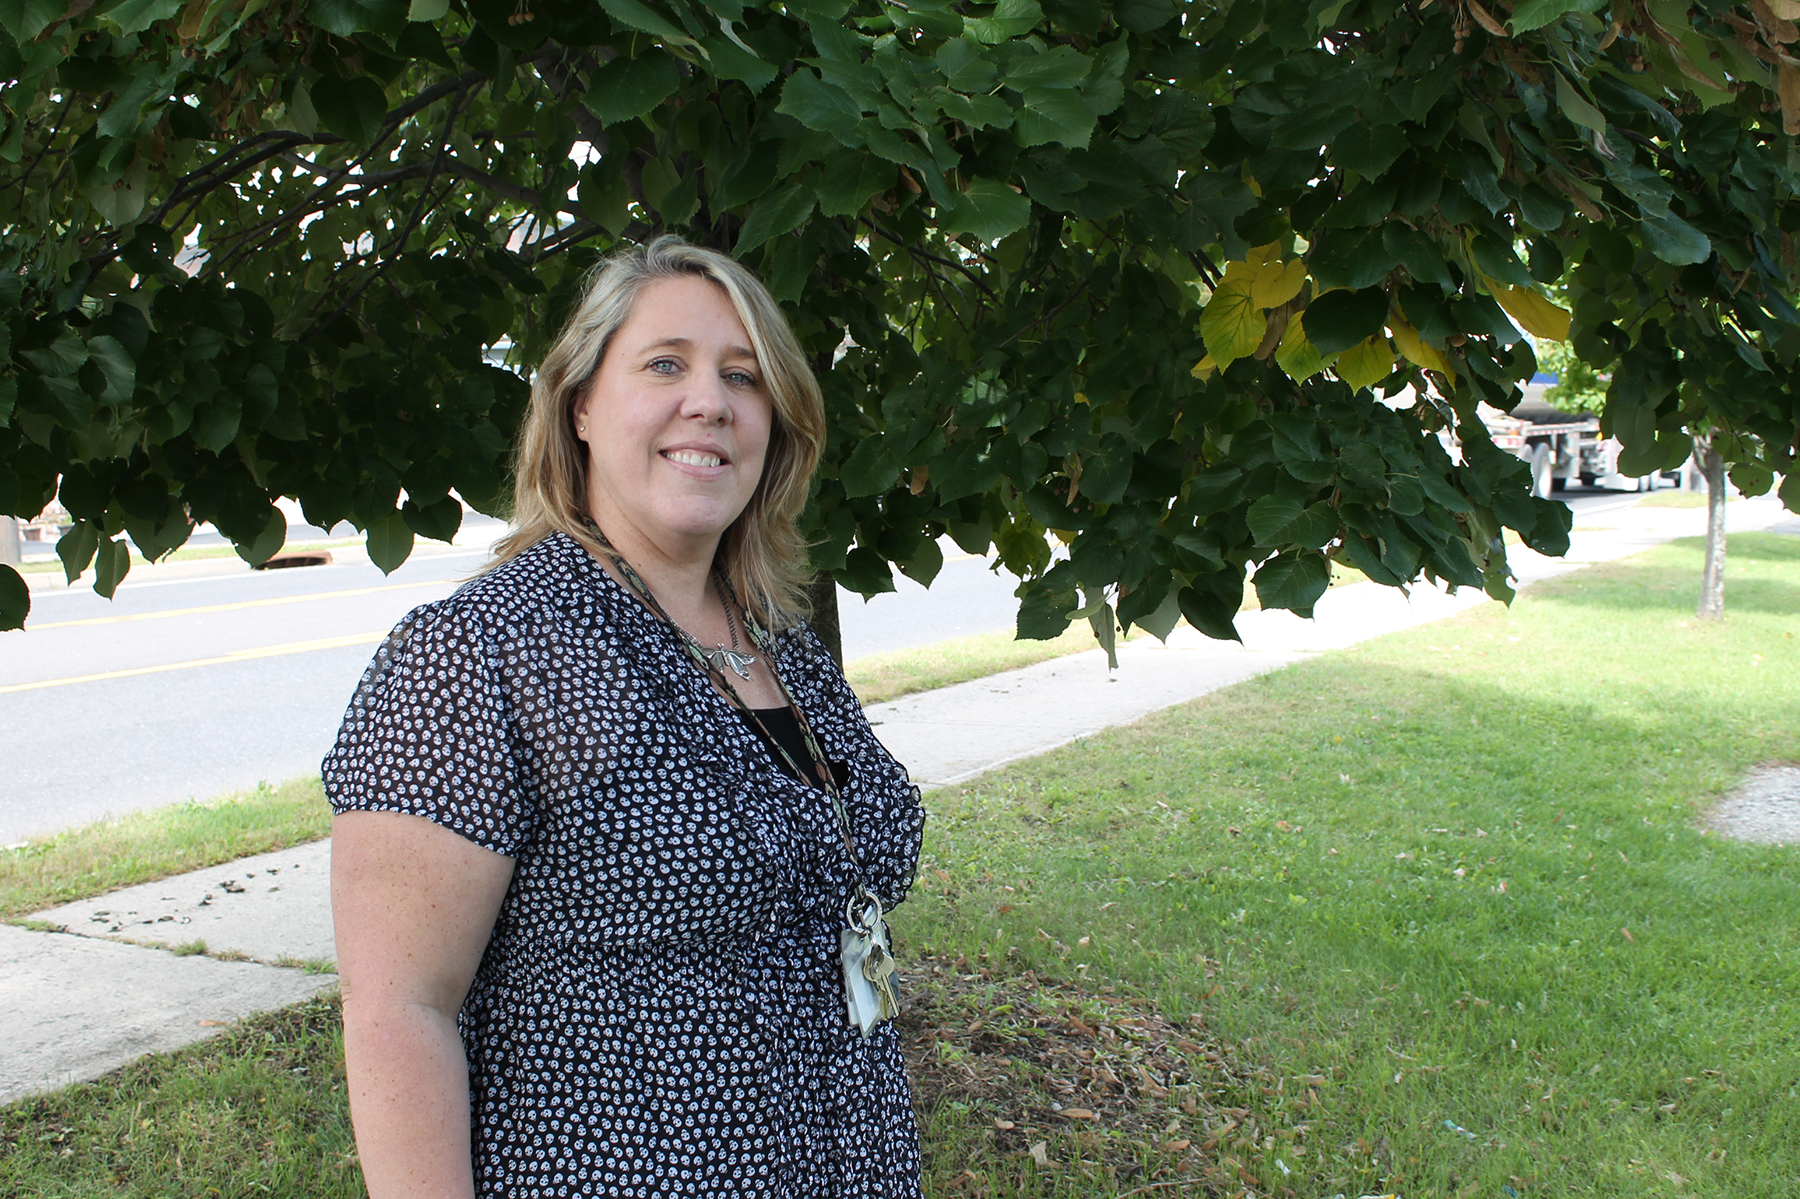 Ulster BOCES Educator Receives Award for Excellence in Teaching